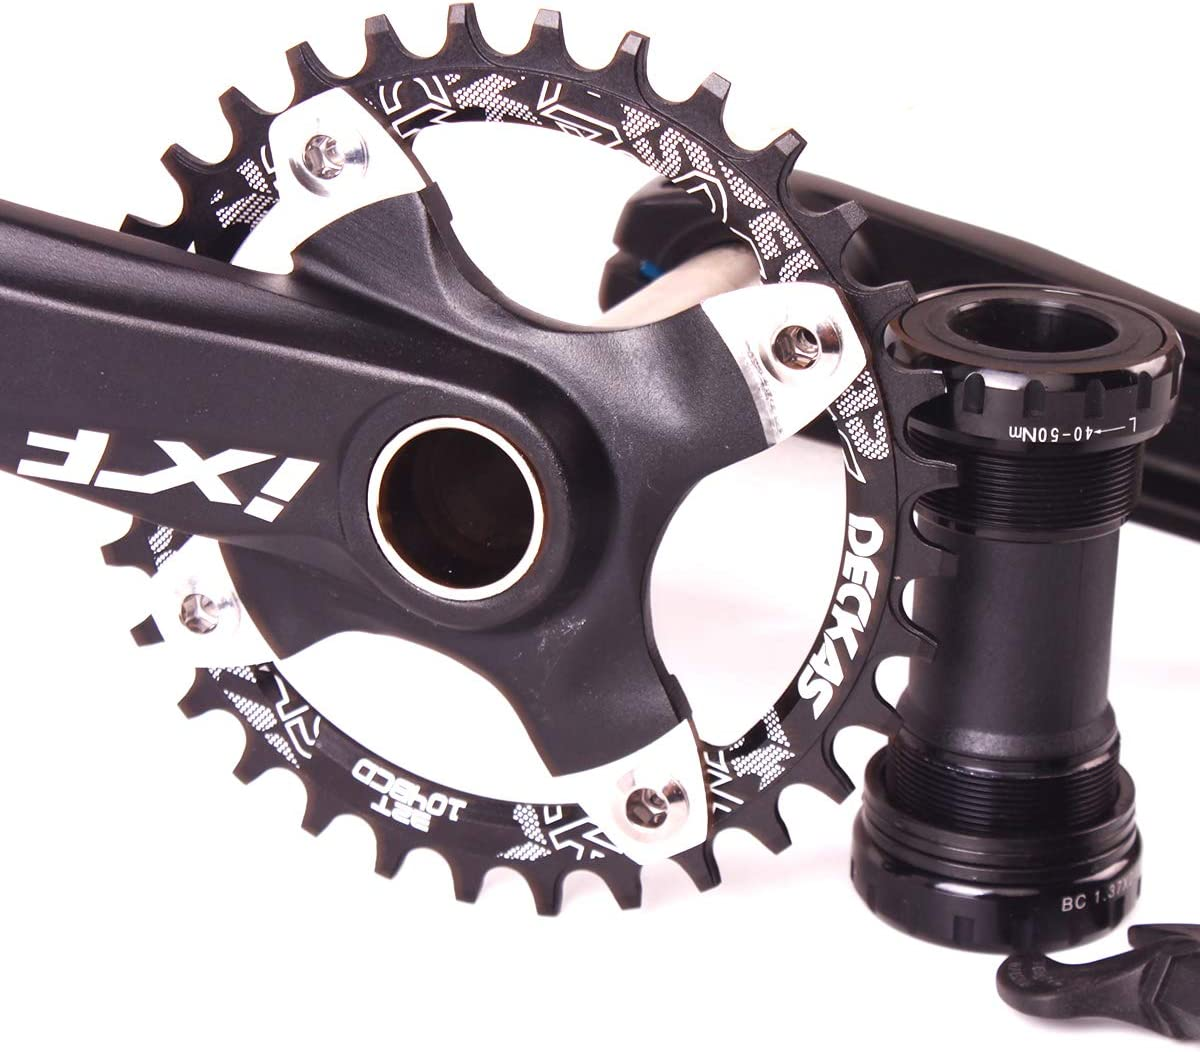 SRAM MTB Bike Crankset With BB 104BCD 32-42T Chainring 170mm Crank fit Shimano